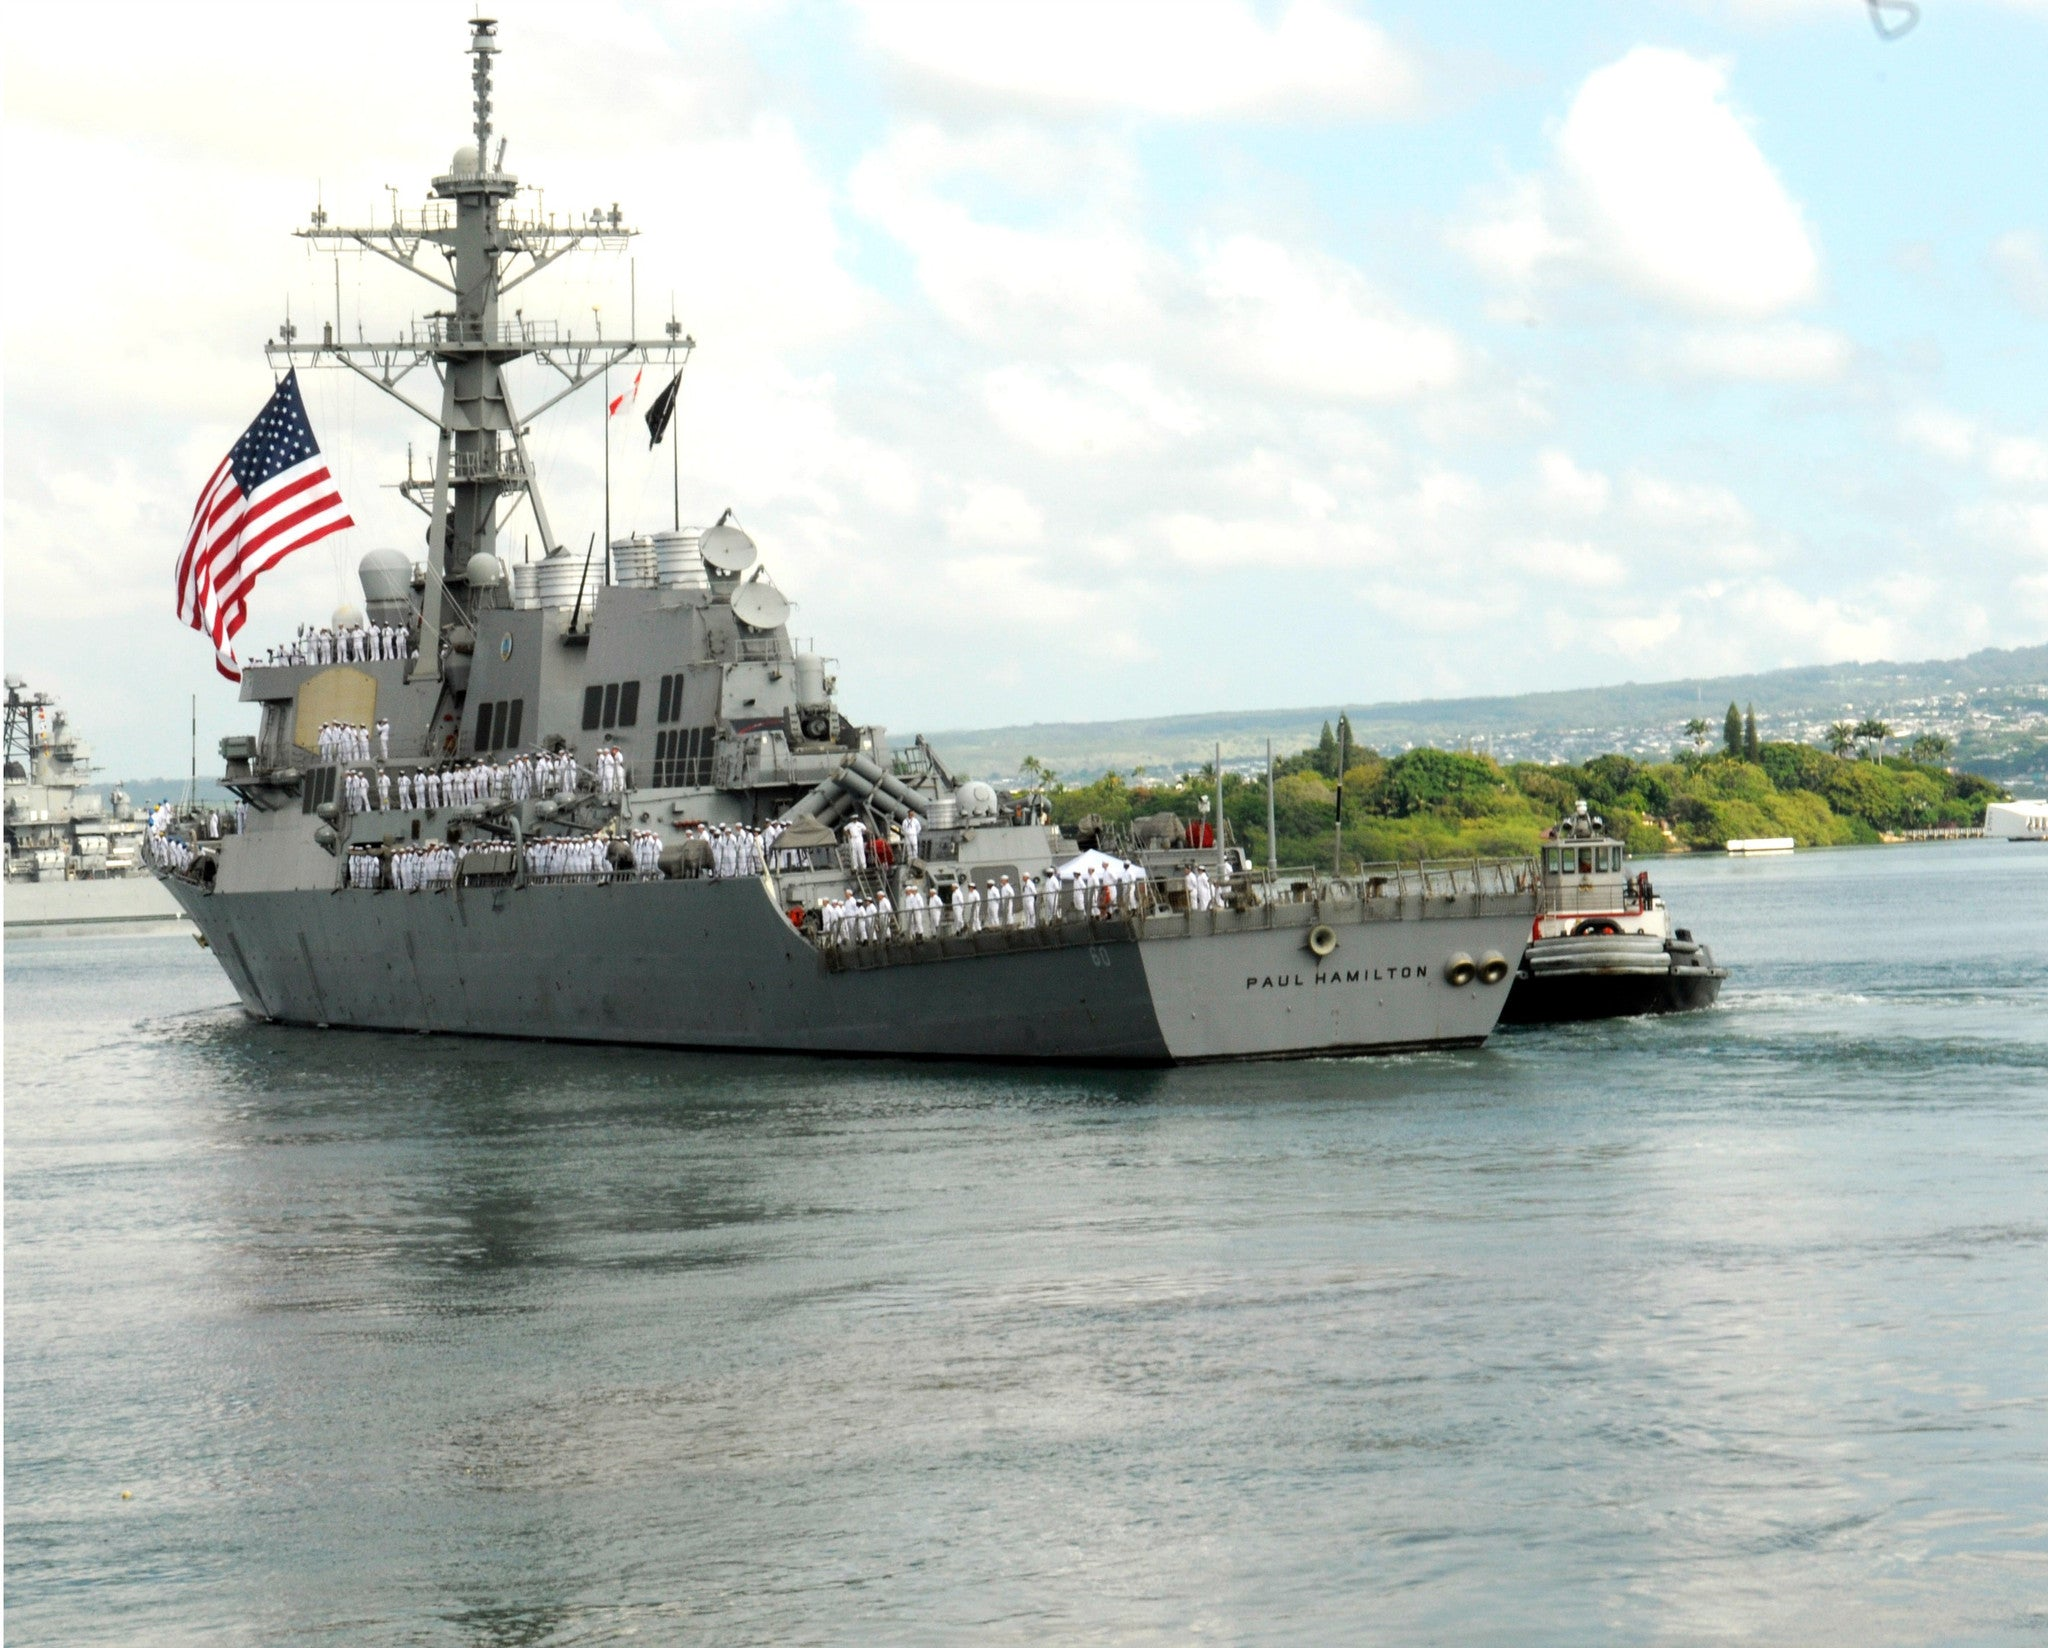 "USS Paul Hamilton DDG-60 Joint Base Pearl Harbor-Hickam September 21, 2012 - 8 x 10"" Photograph"